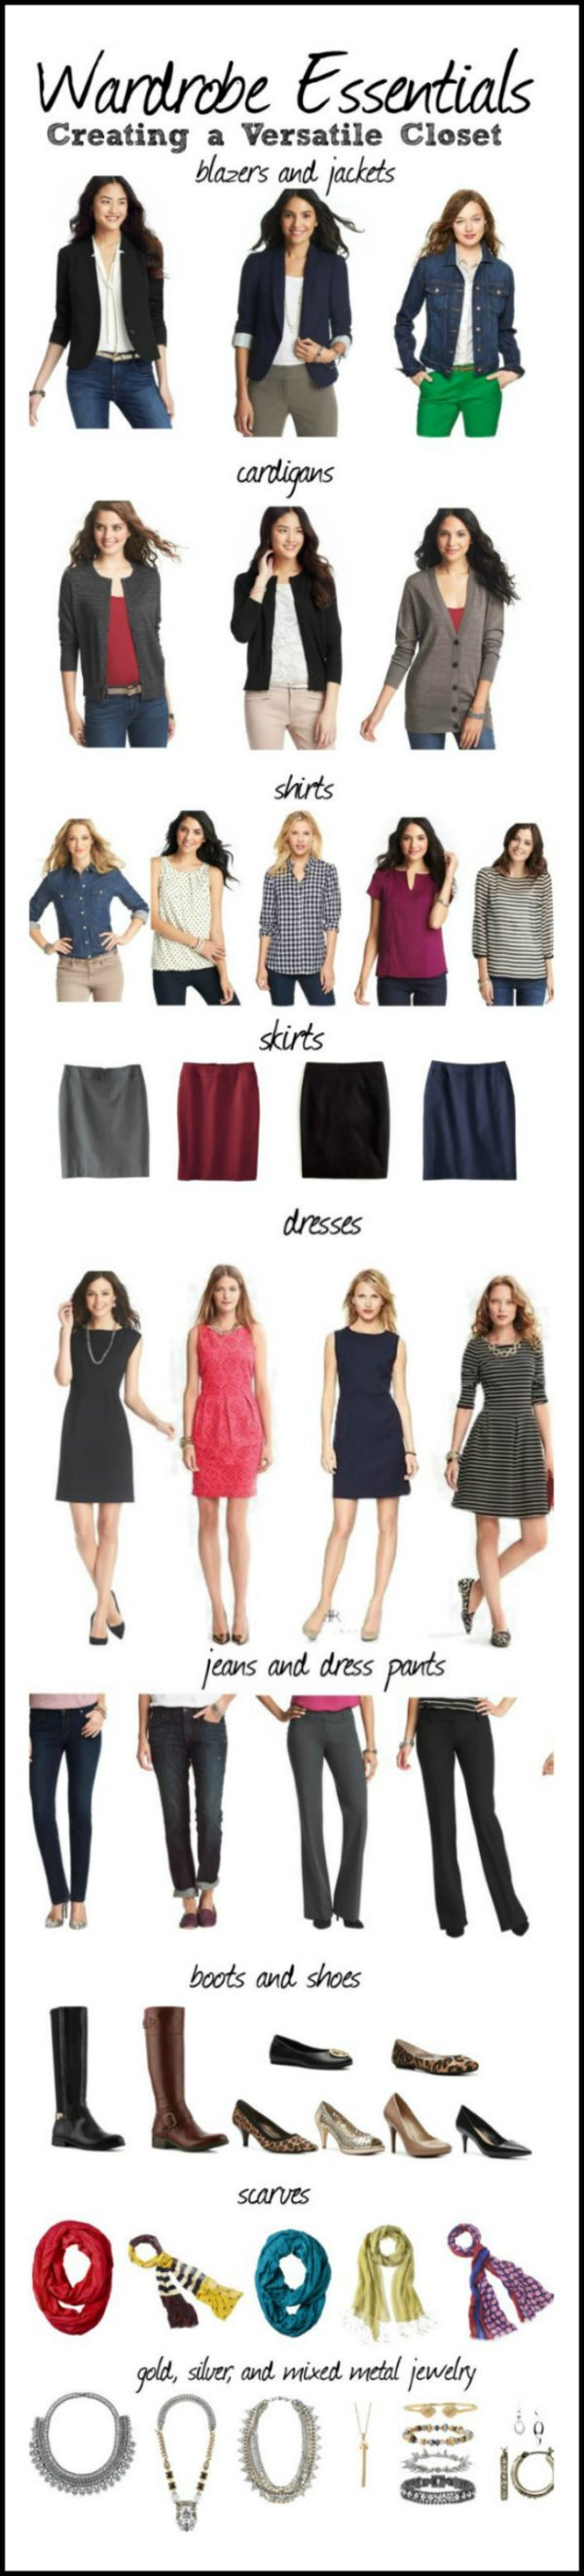 Clothed with Grace: Putting All the Pieces Together: Building A Wardrobe